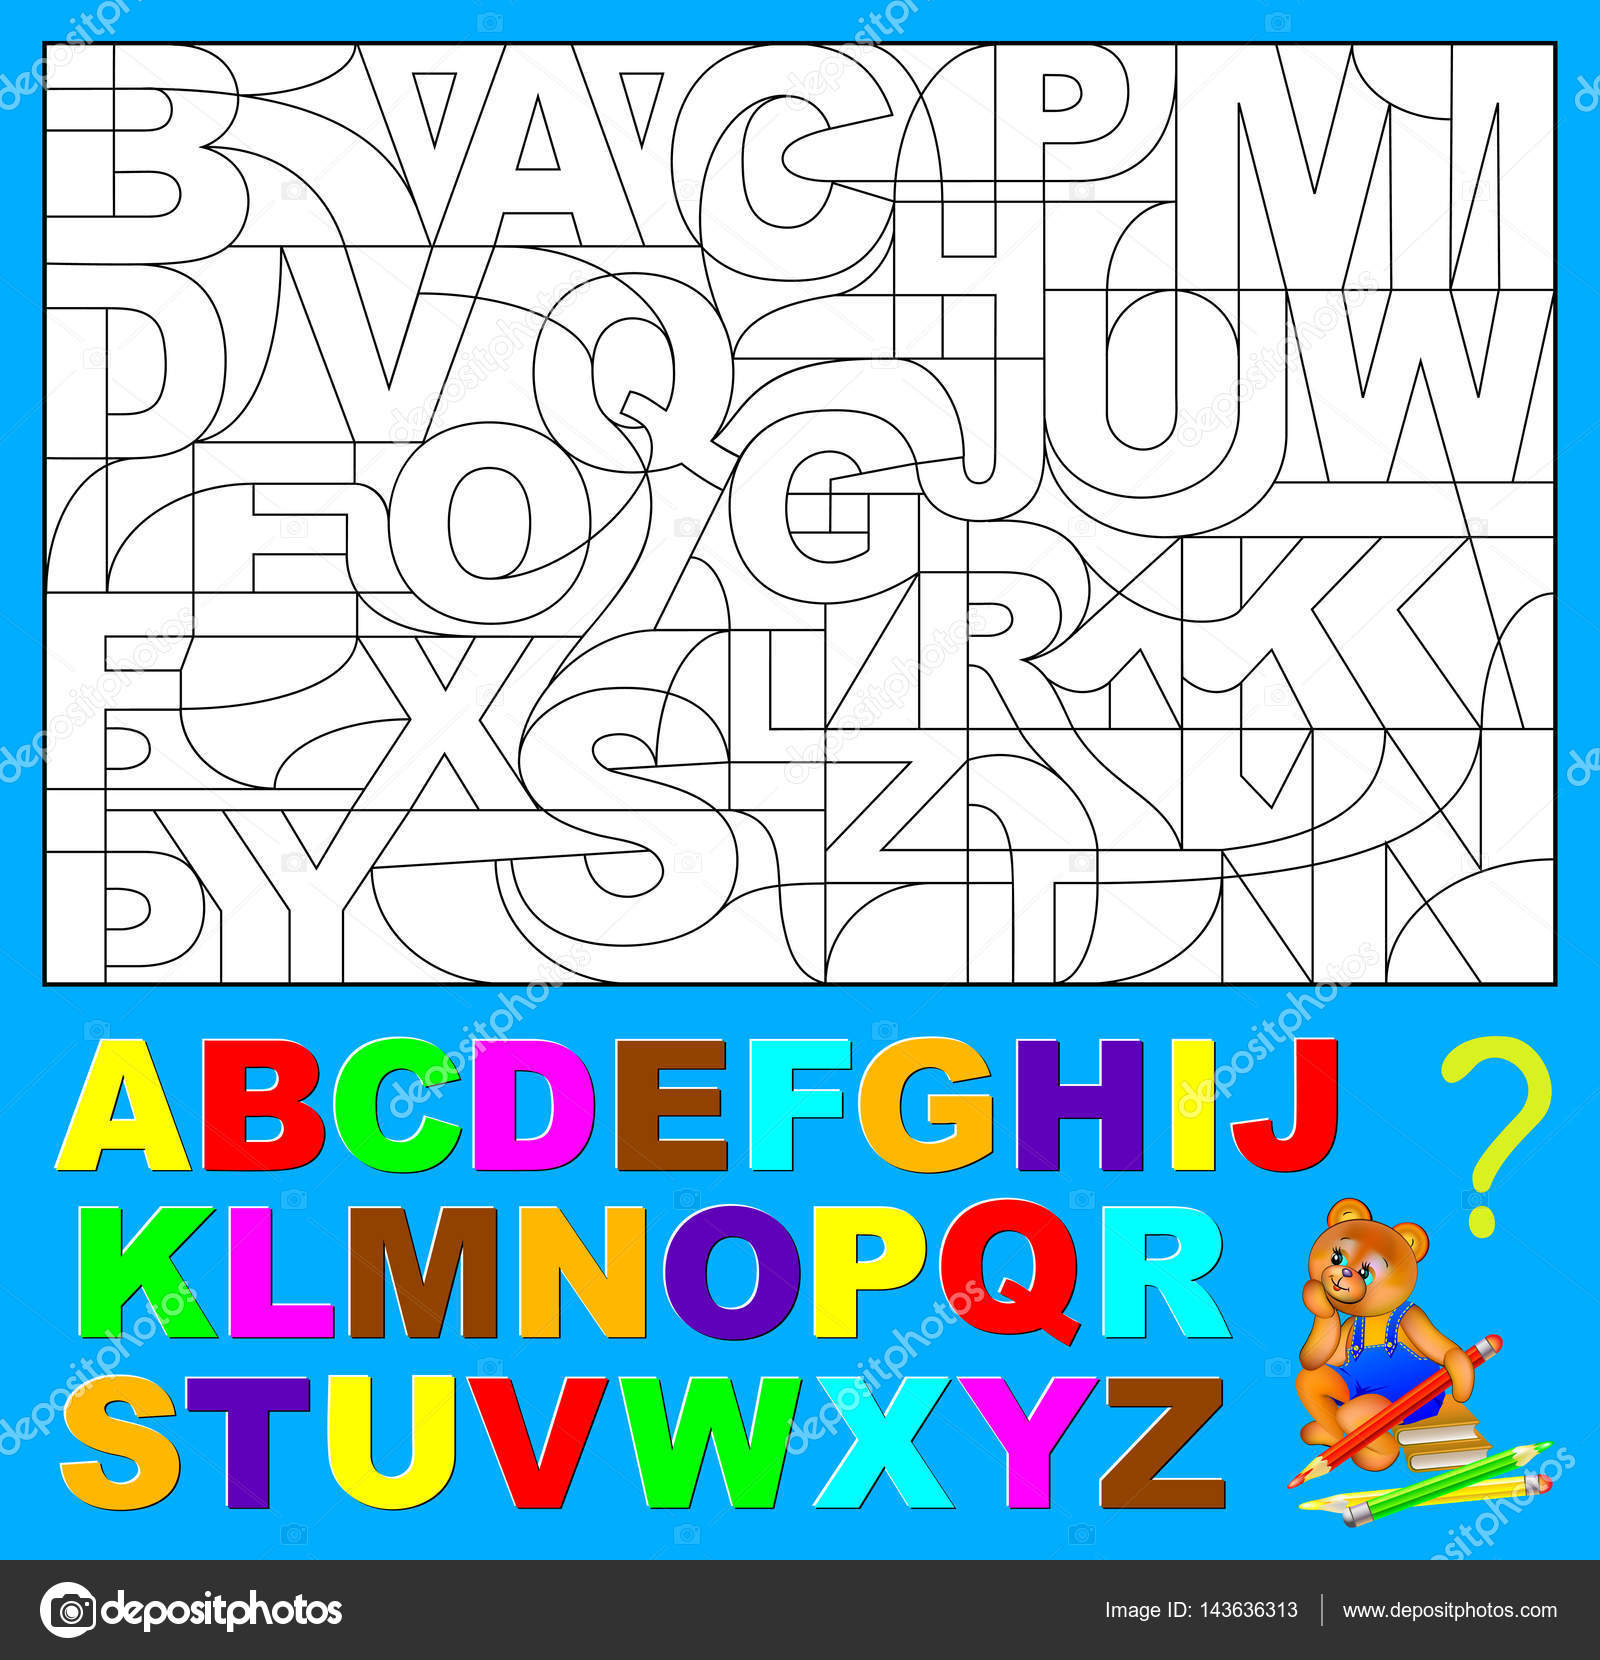 Https Cz Depositphotos Com 143636313 Stock Illustration Educational Page For Young Children Html